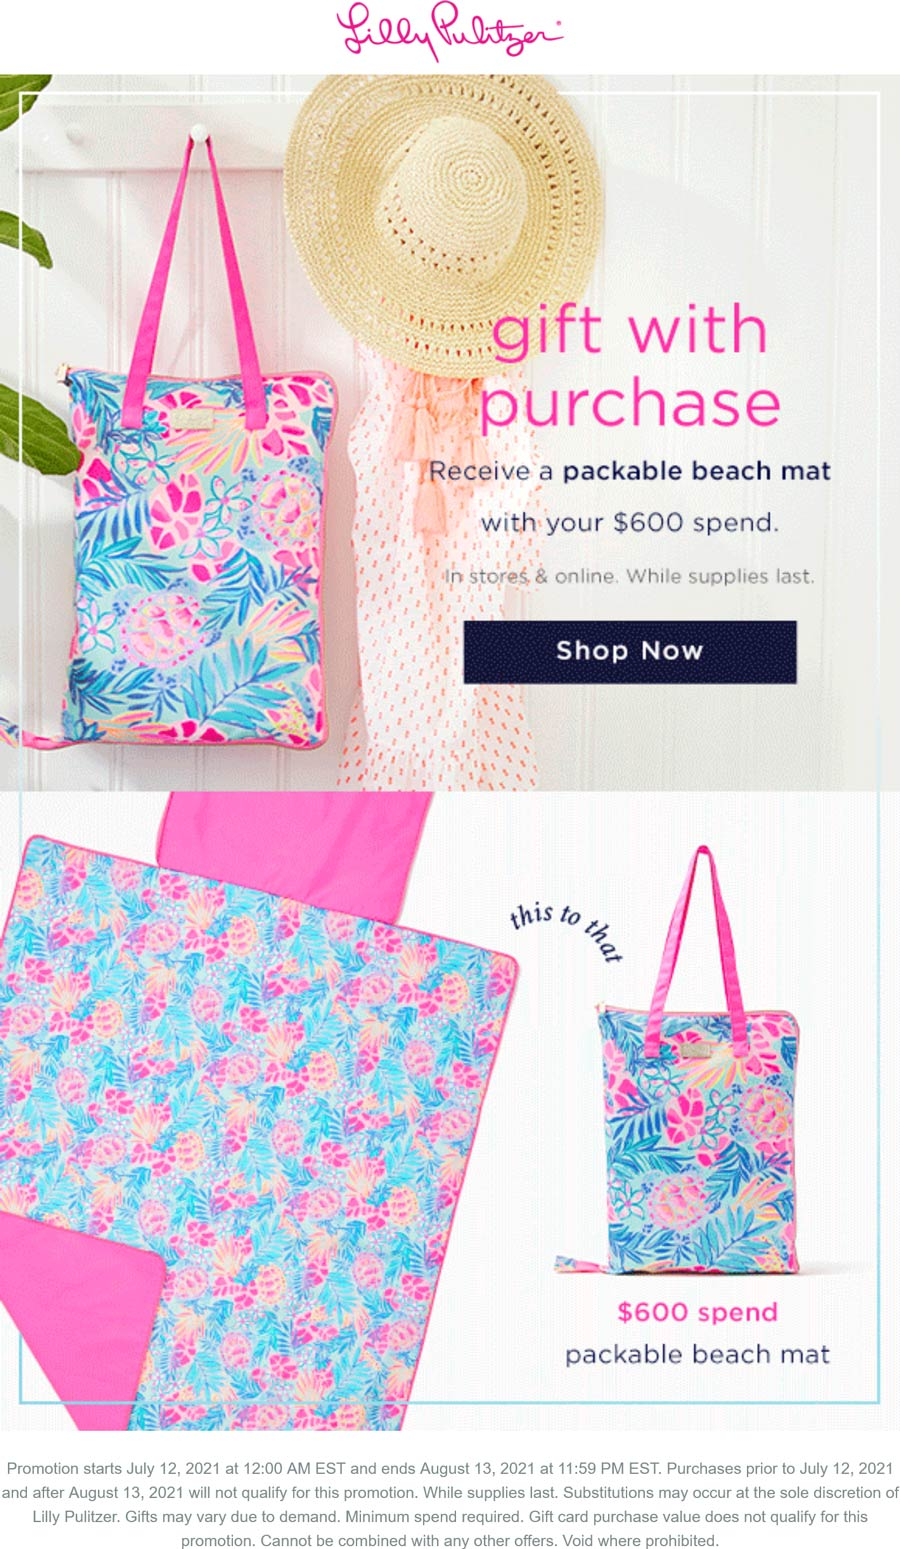 Lilly Pulitzer stores Coupon  Free packable beach mat with $600 spent at Lilly Pulitzer, ditto online #lillypulitzer